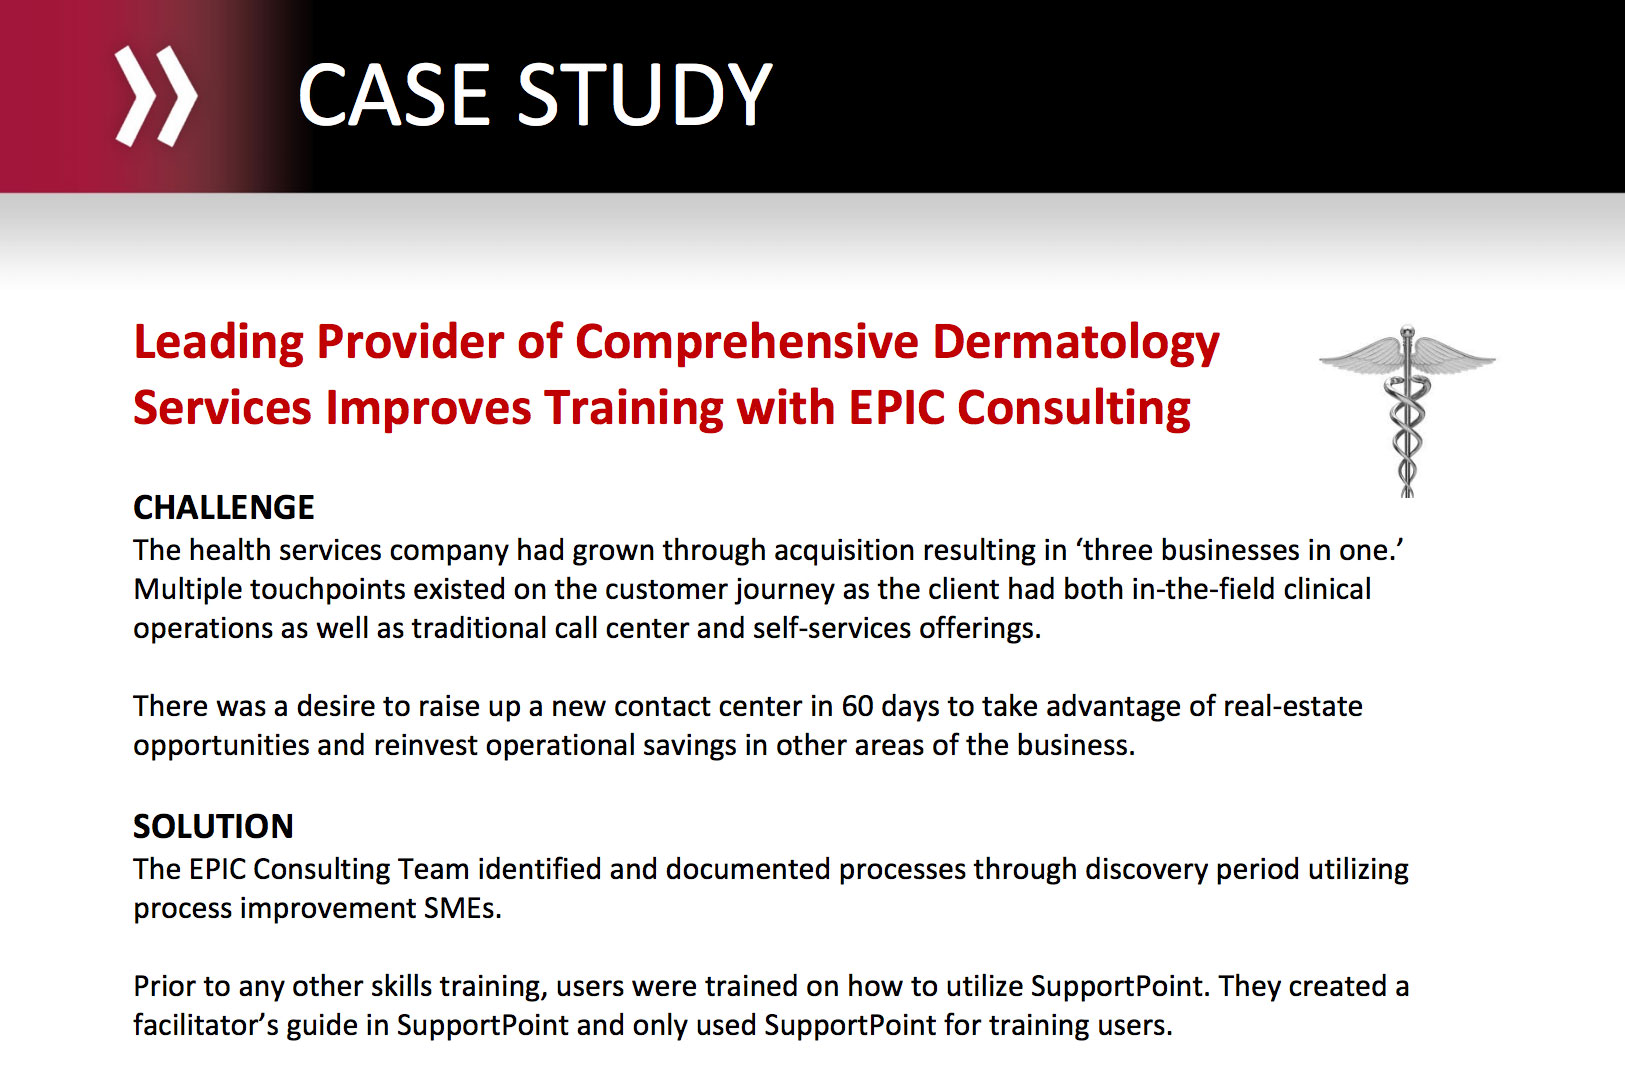 Leading Provider of Comprehensive Dermatology Services Improves Training with EPIC Consulting